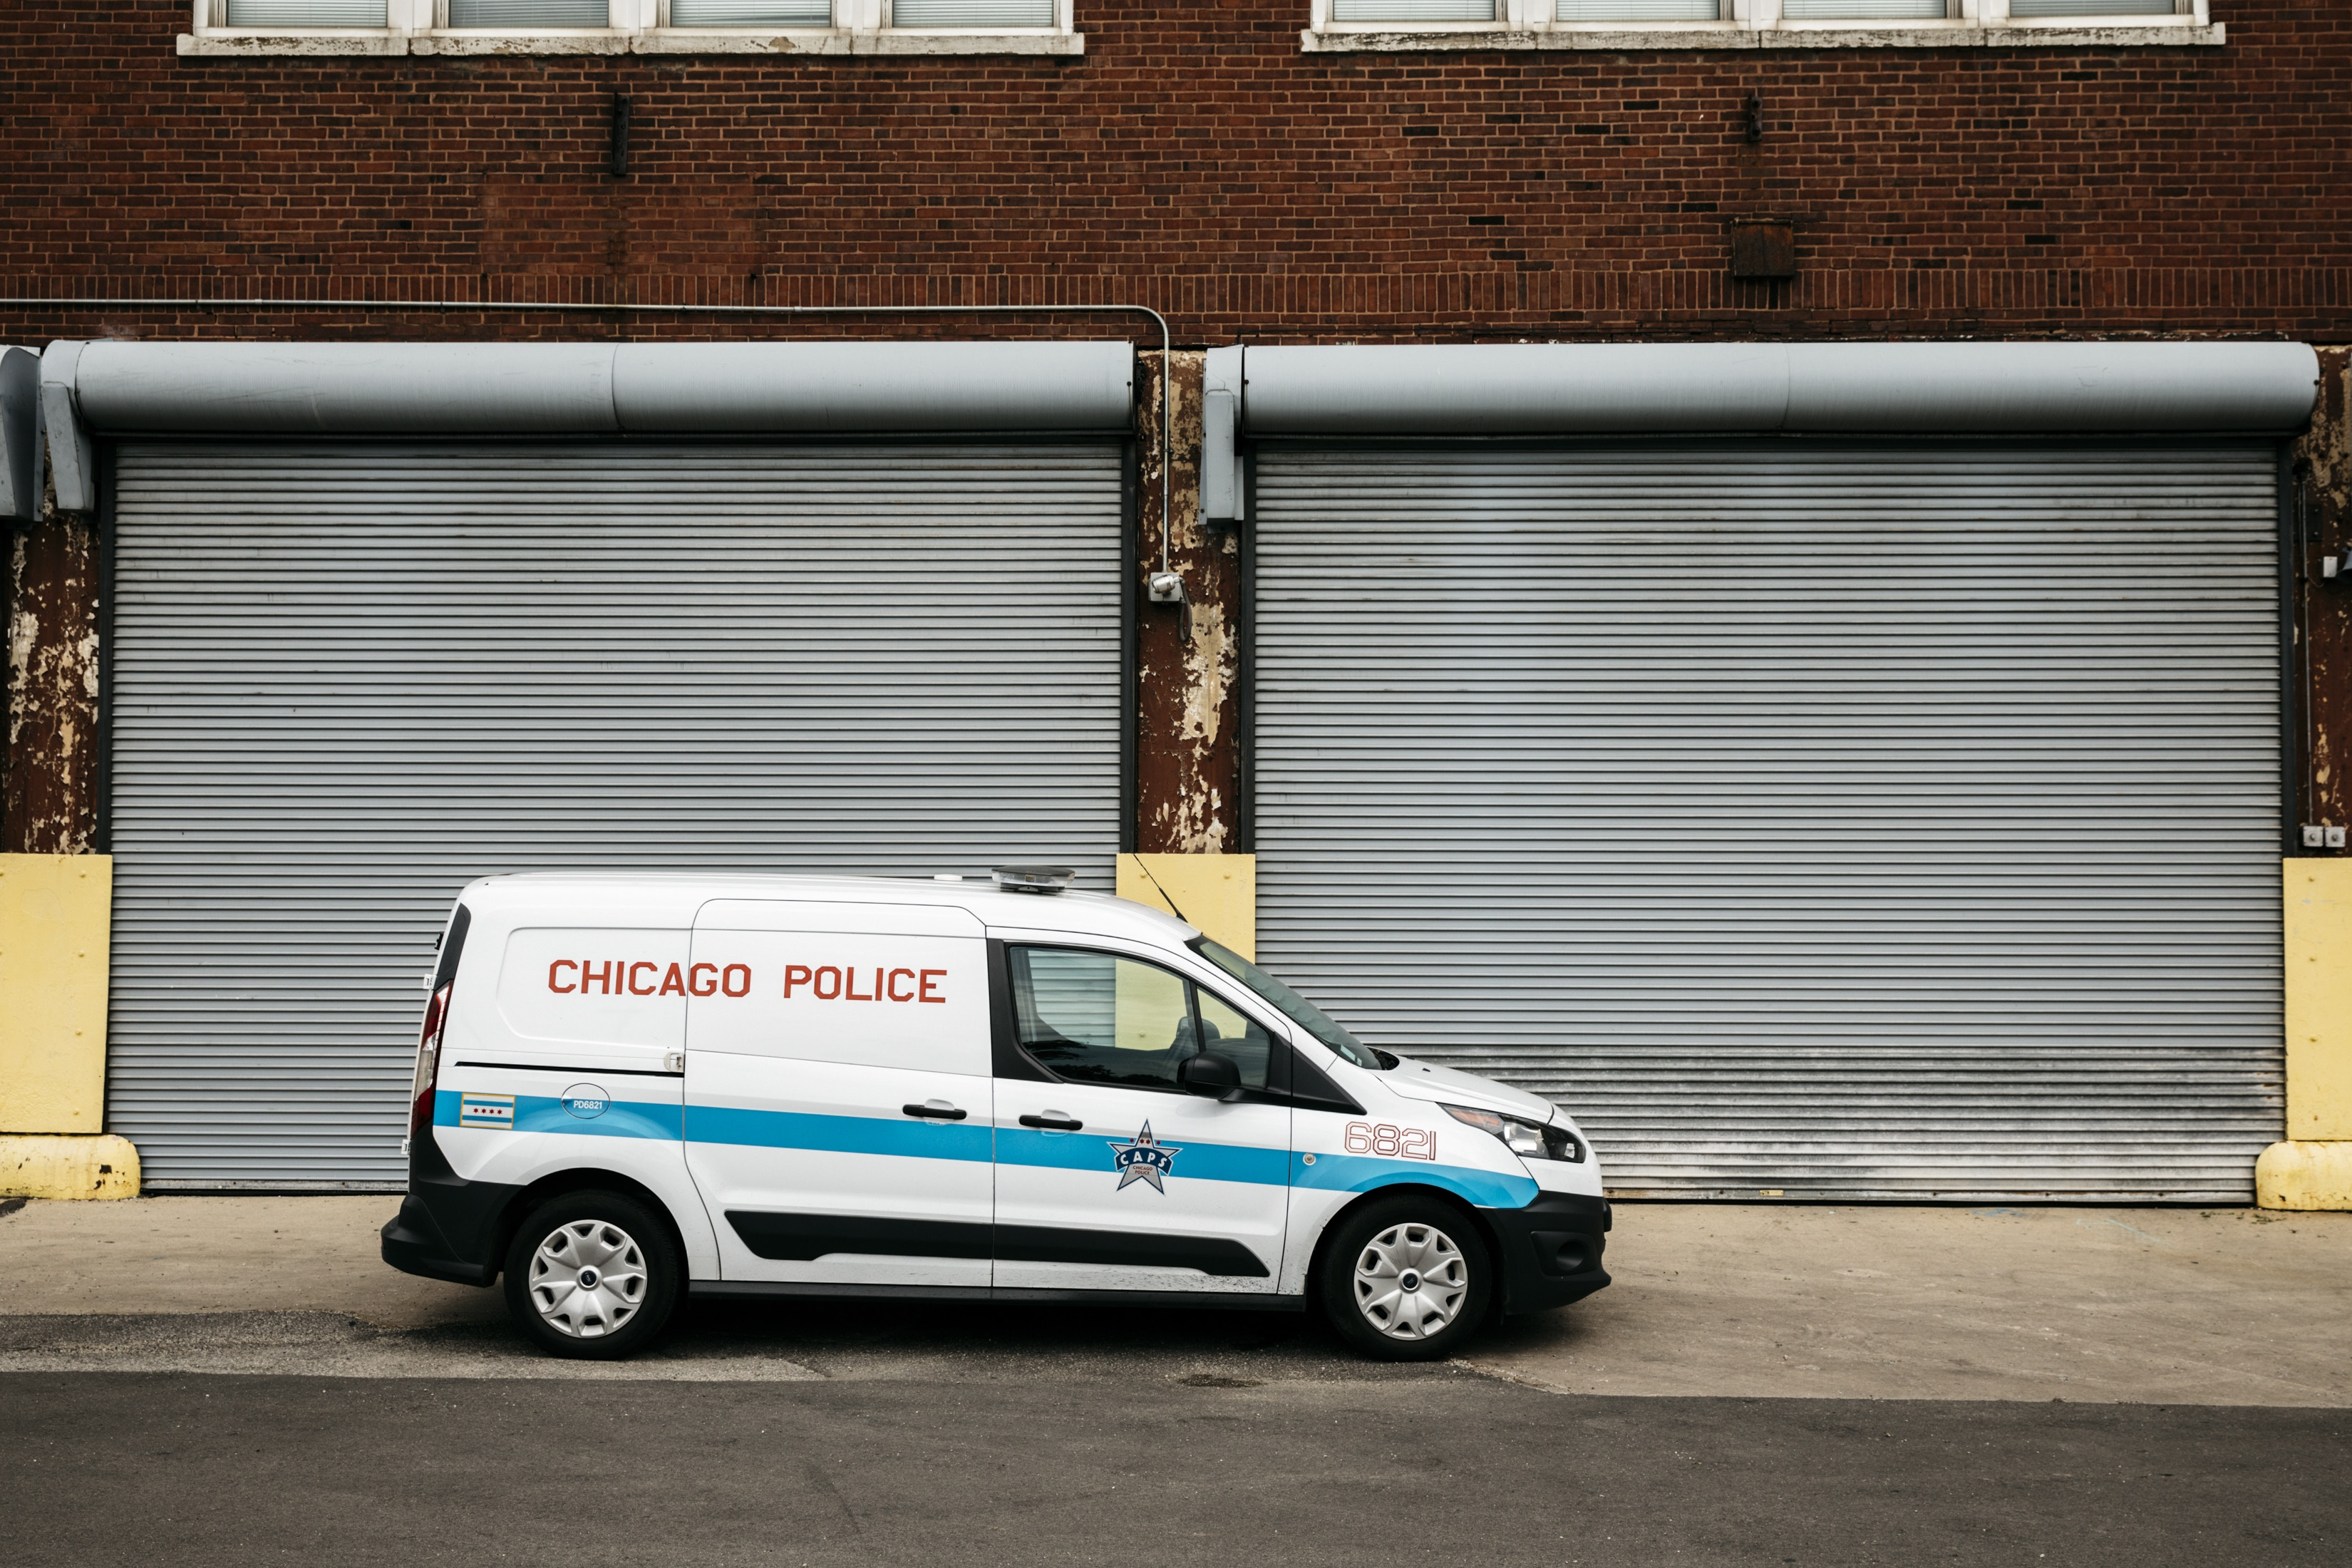 Chicago, IL - July 13, 2017 - A Chicago Police Department vehicle parked in front of the Special Operations Center at 3393 W Fillmore.